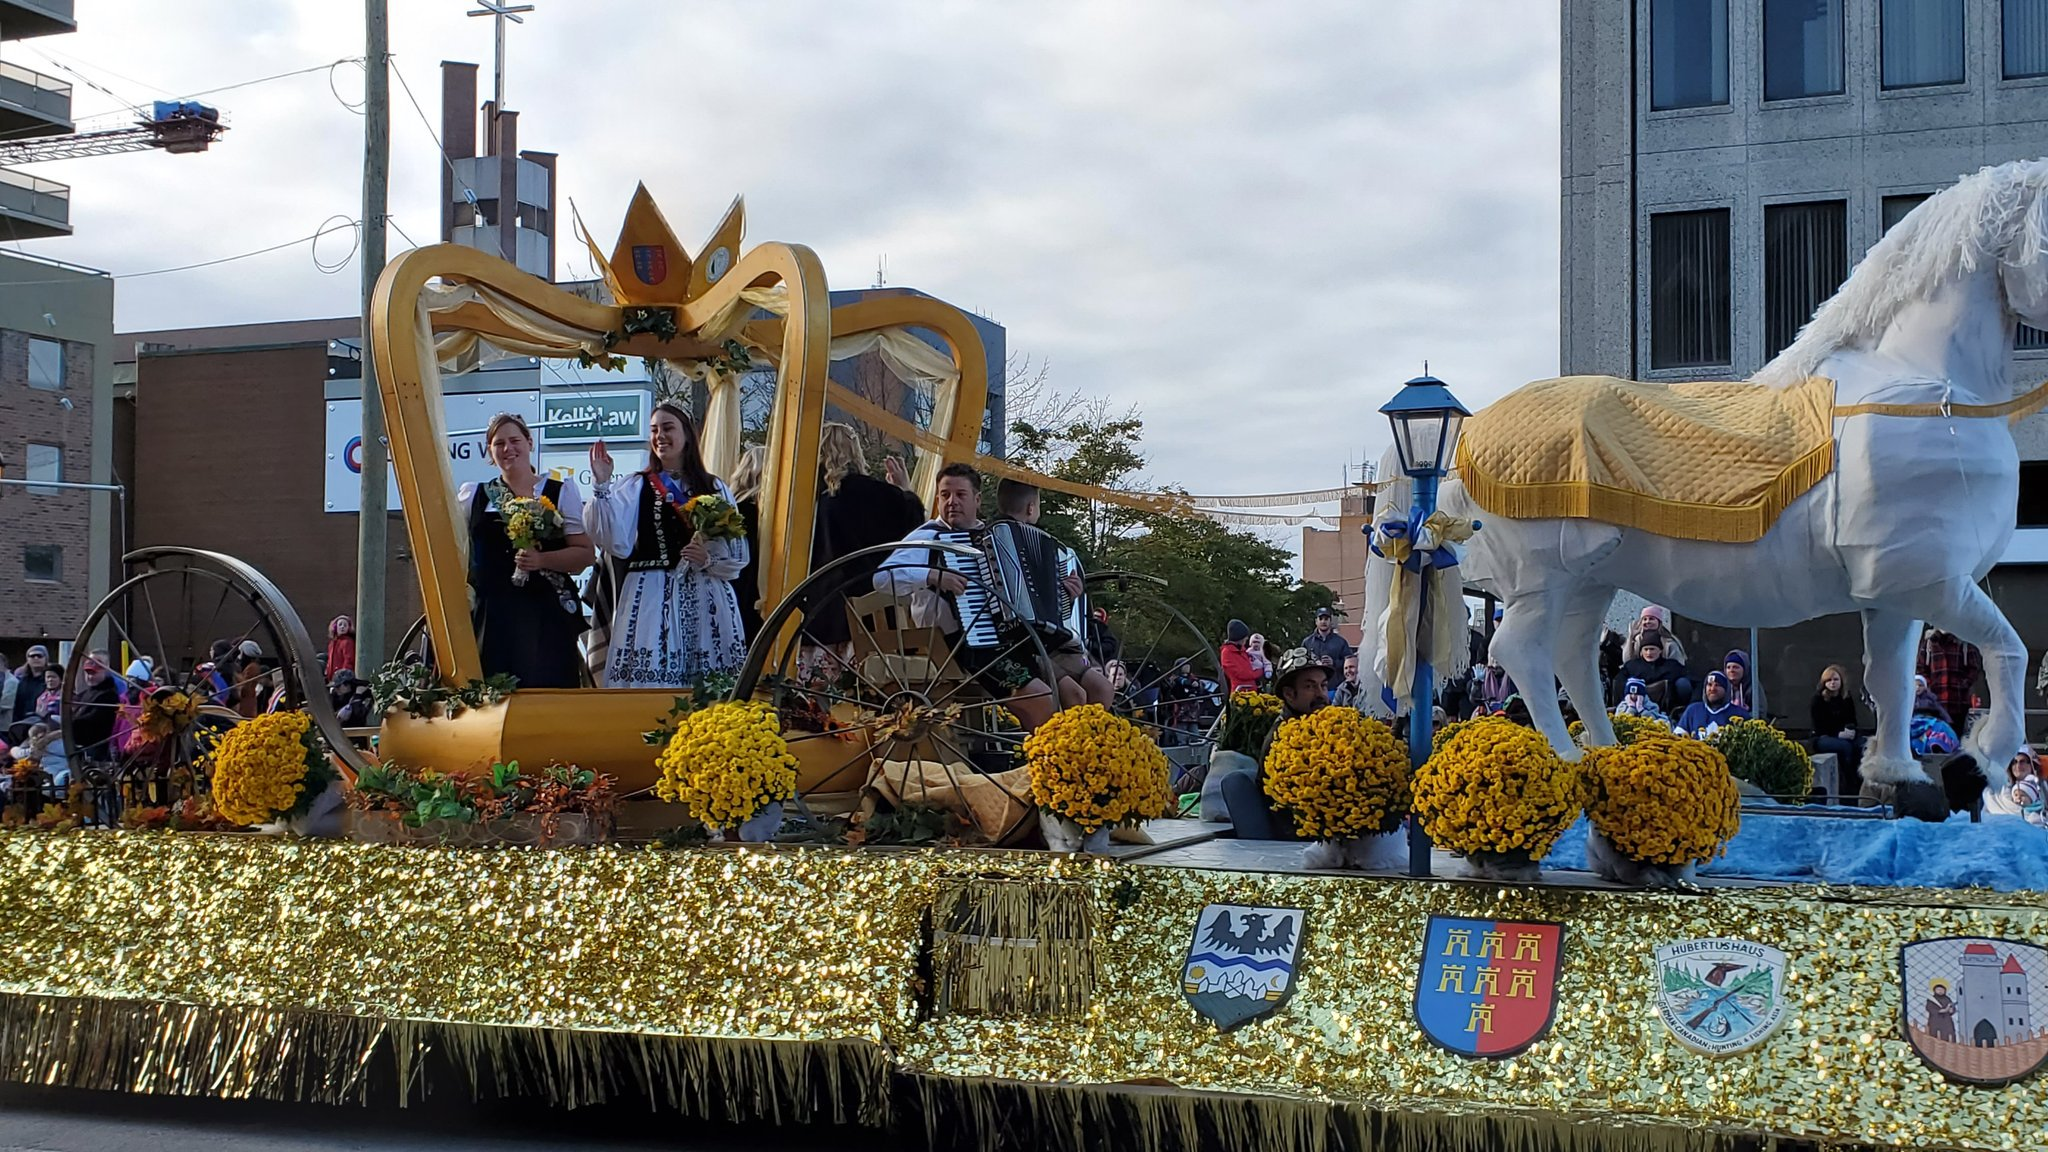 A look at the winning floats from Monday's parade